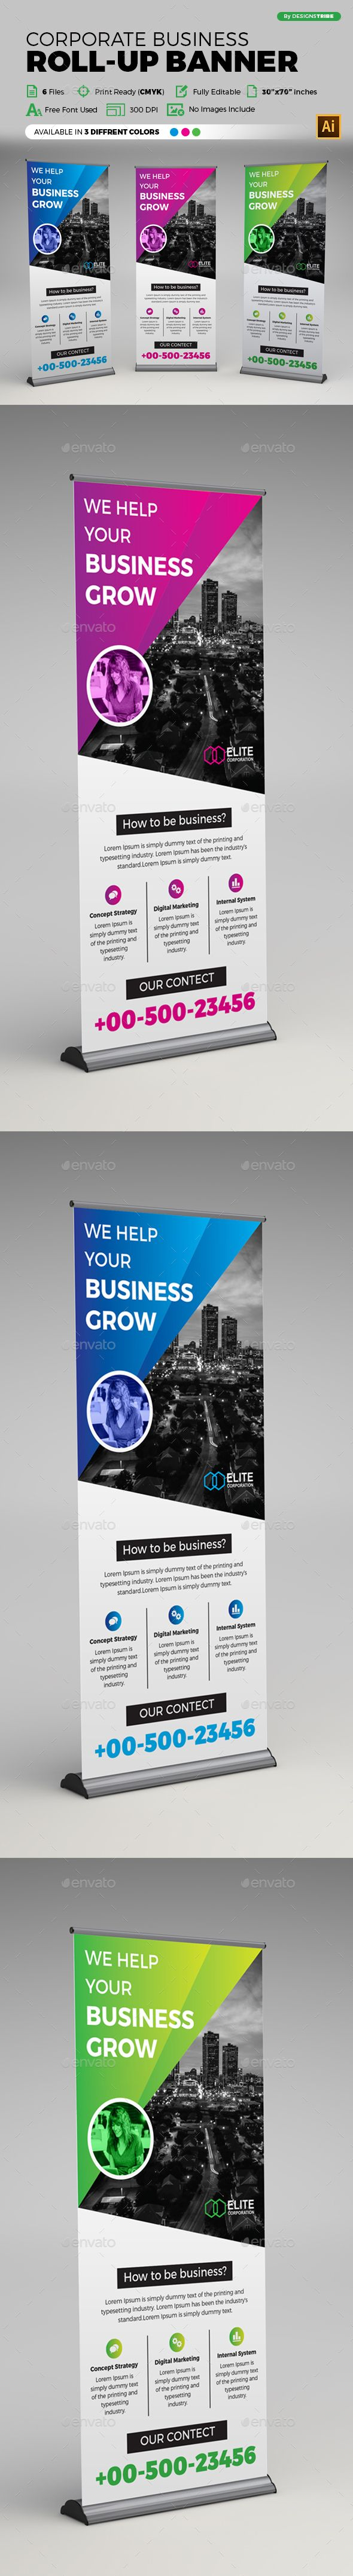 Corporate Business Roll-up Banner Template Vector EPS, AI ...